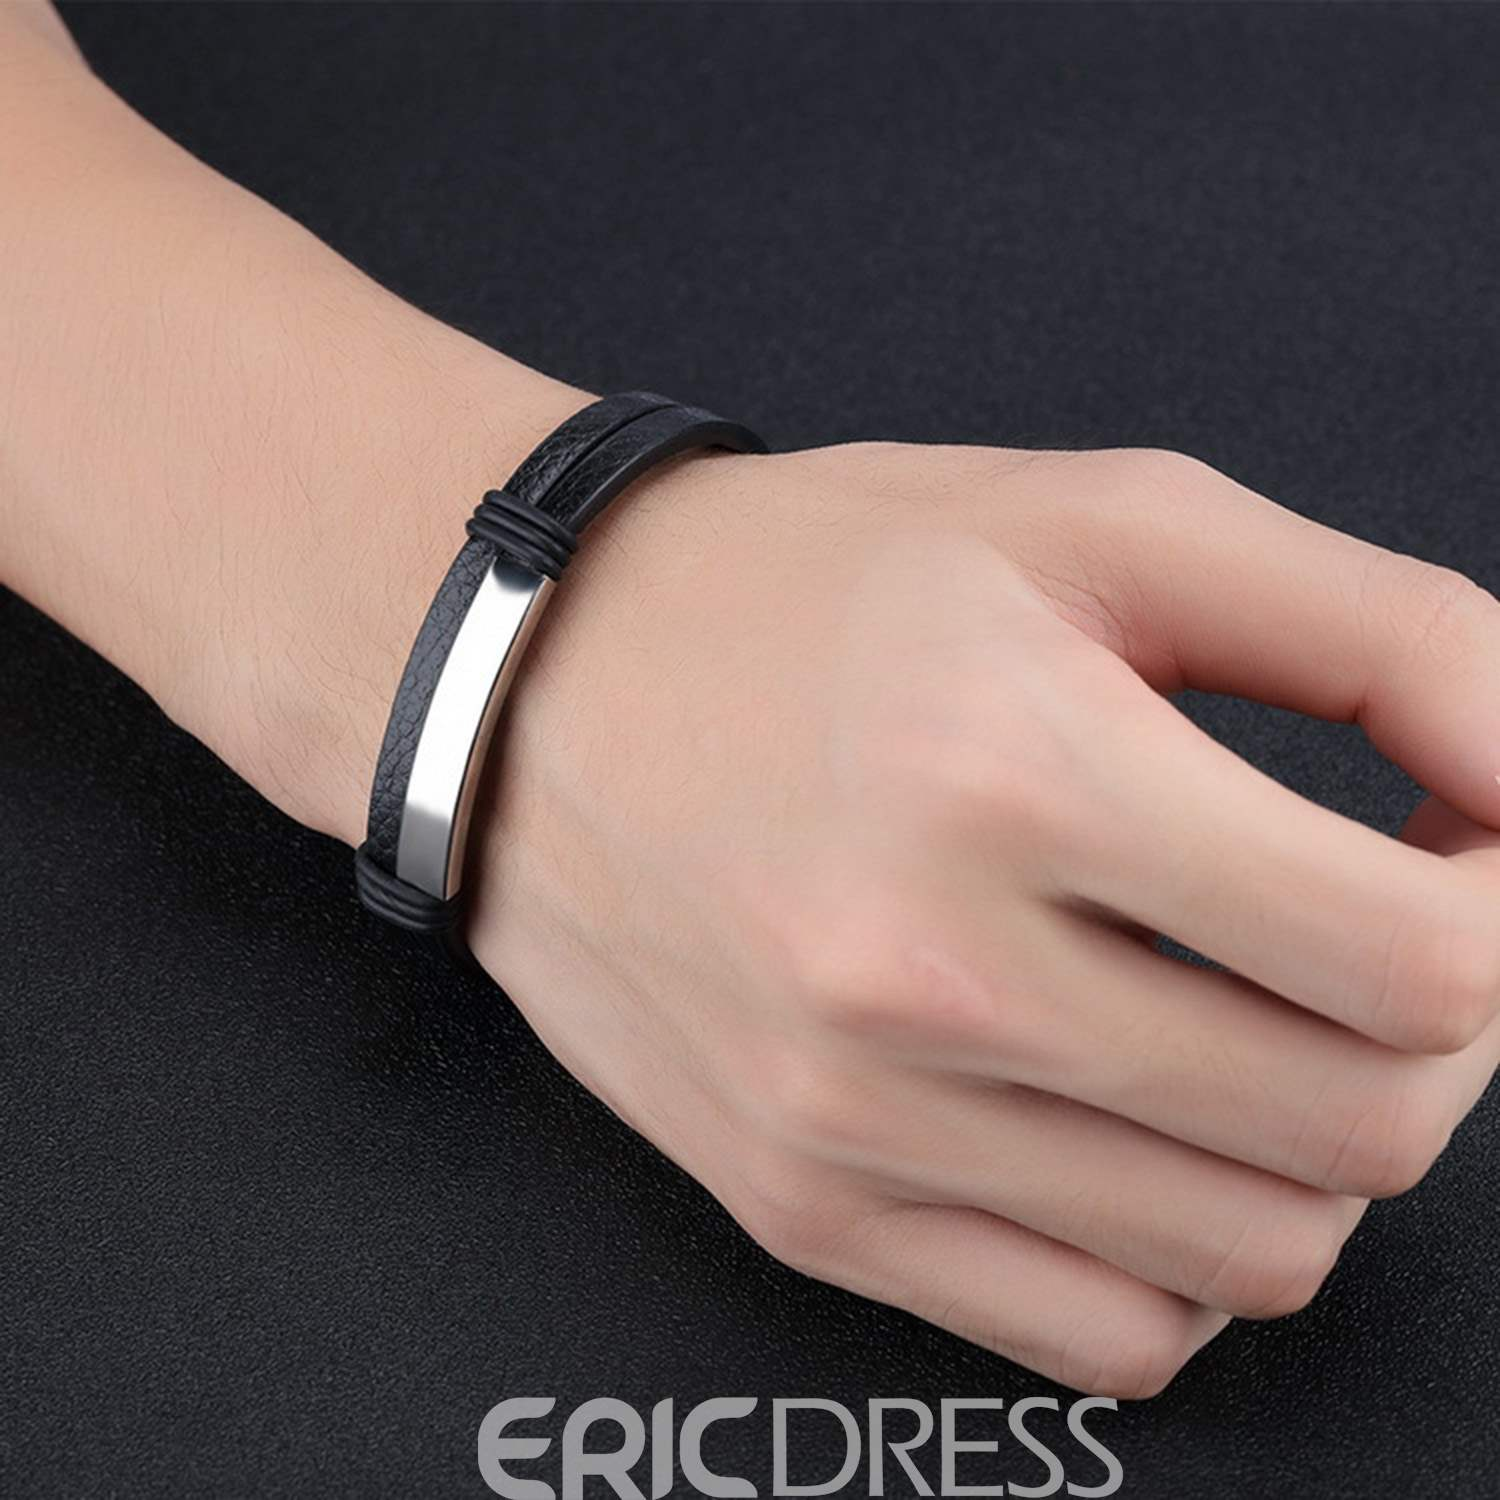 Ericdress Hot Stainless Steel Leather Bracelet for Men/Women